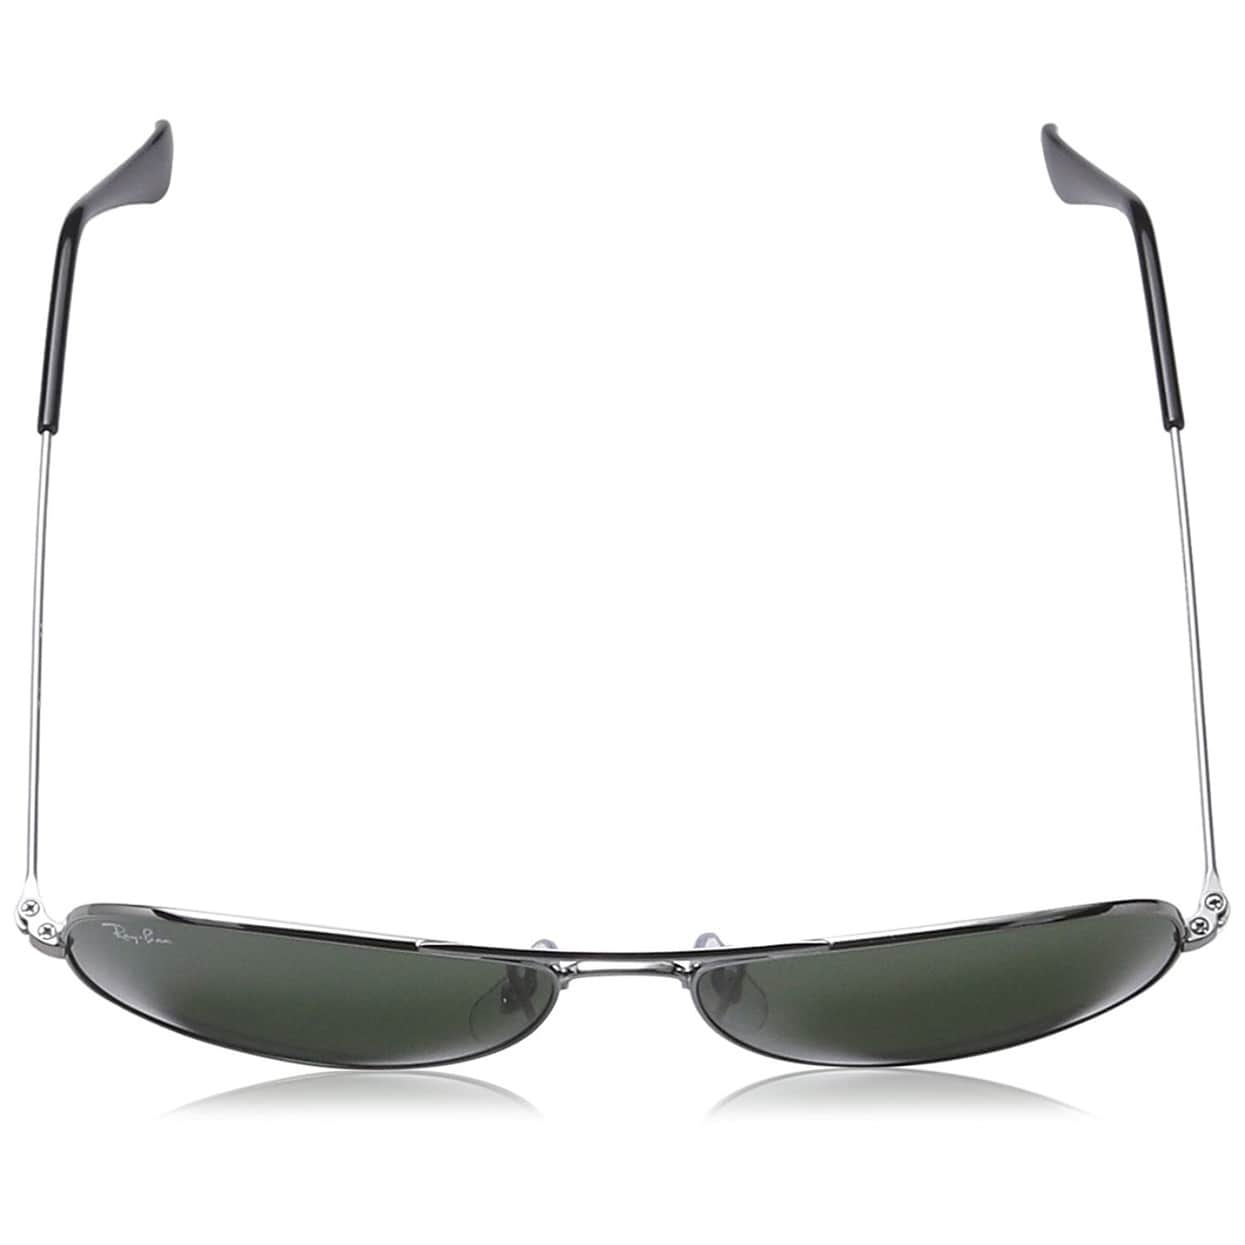 eb55b14e51d88 Shop Ray-Ban Men s RB3362 Cockpit Gunmetal Frame Green Classic 56mm Lens  Sunglasses - Free Shipping Today - Overstock - 18251235